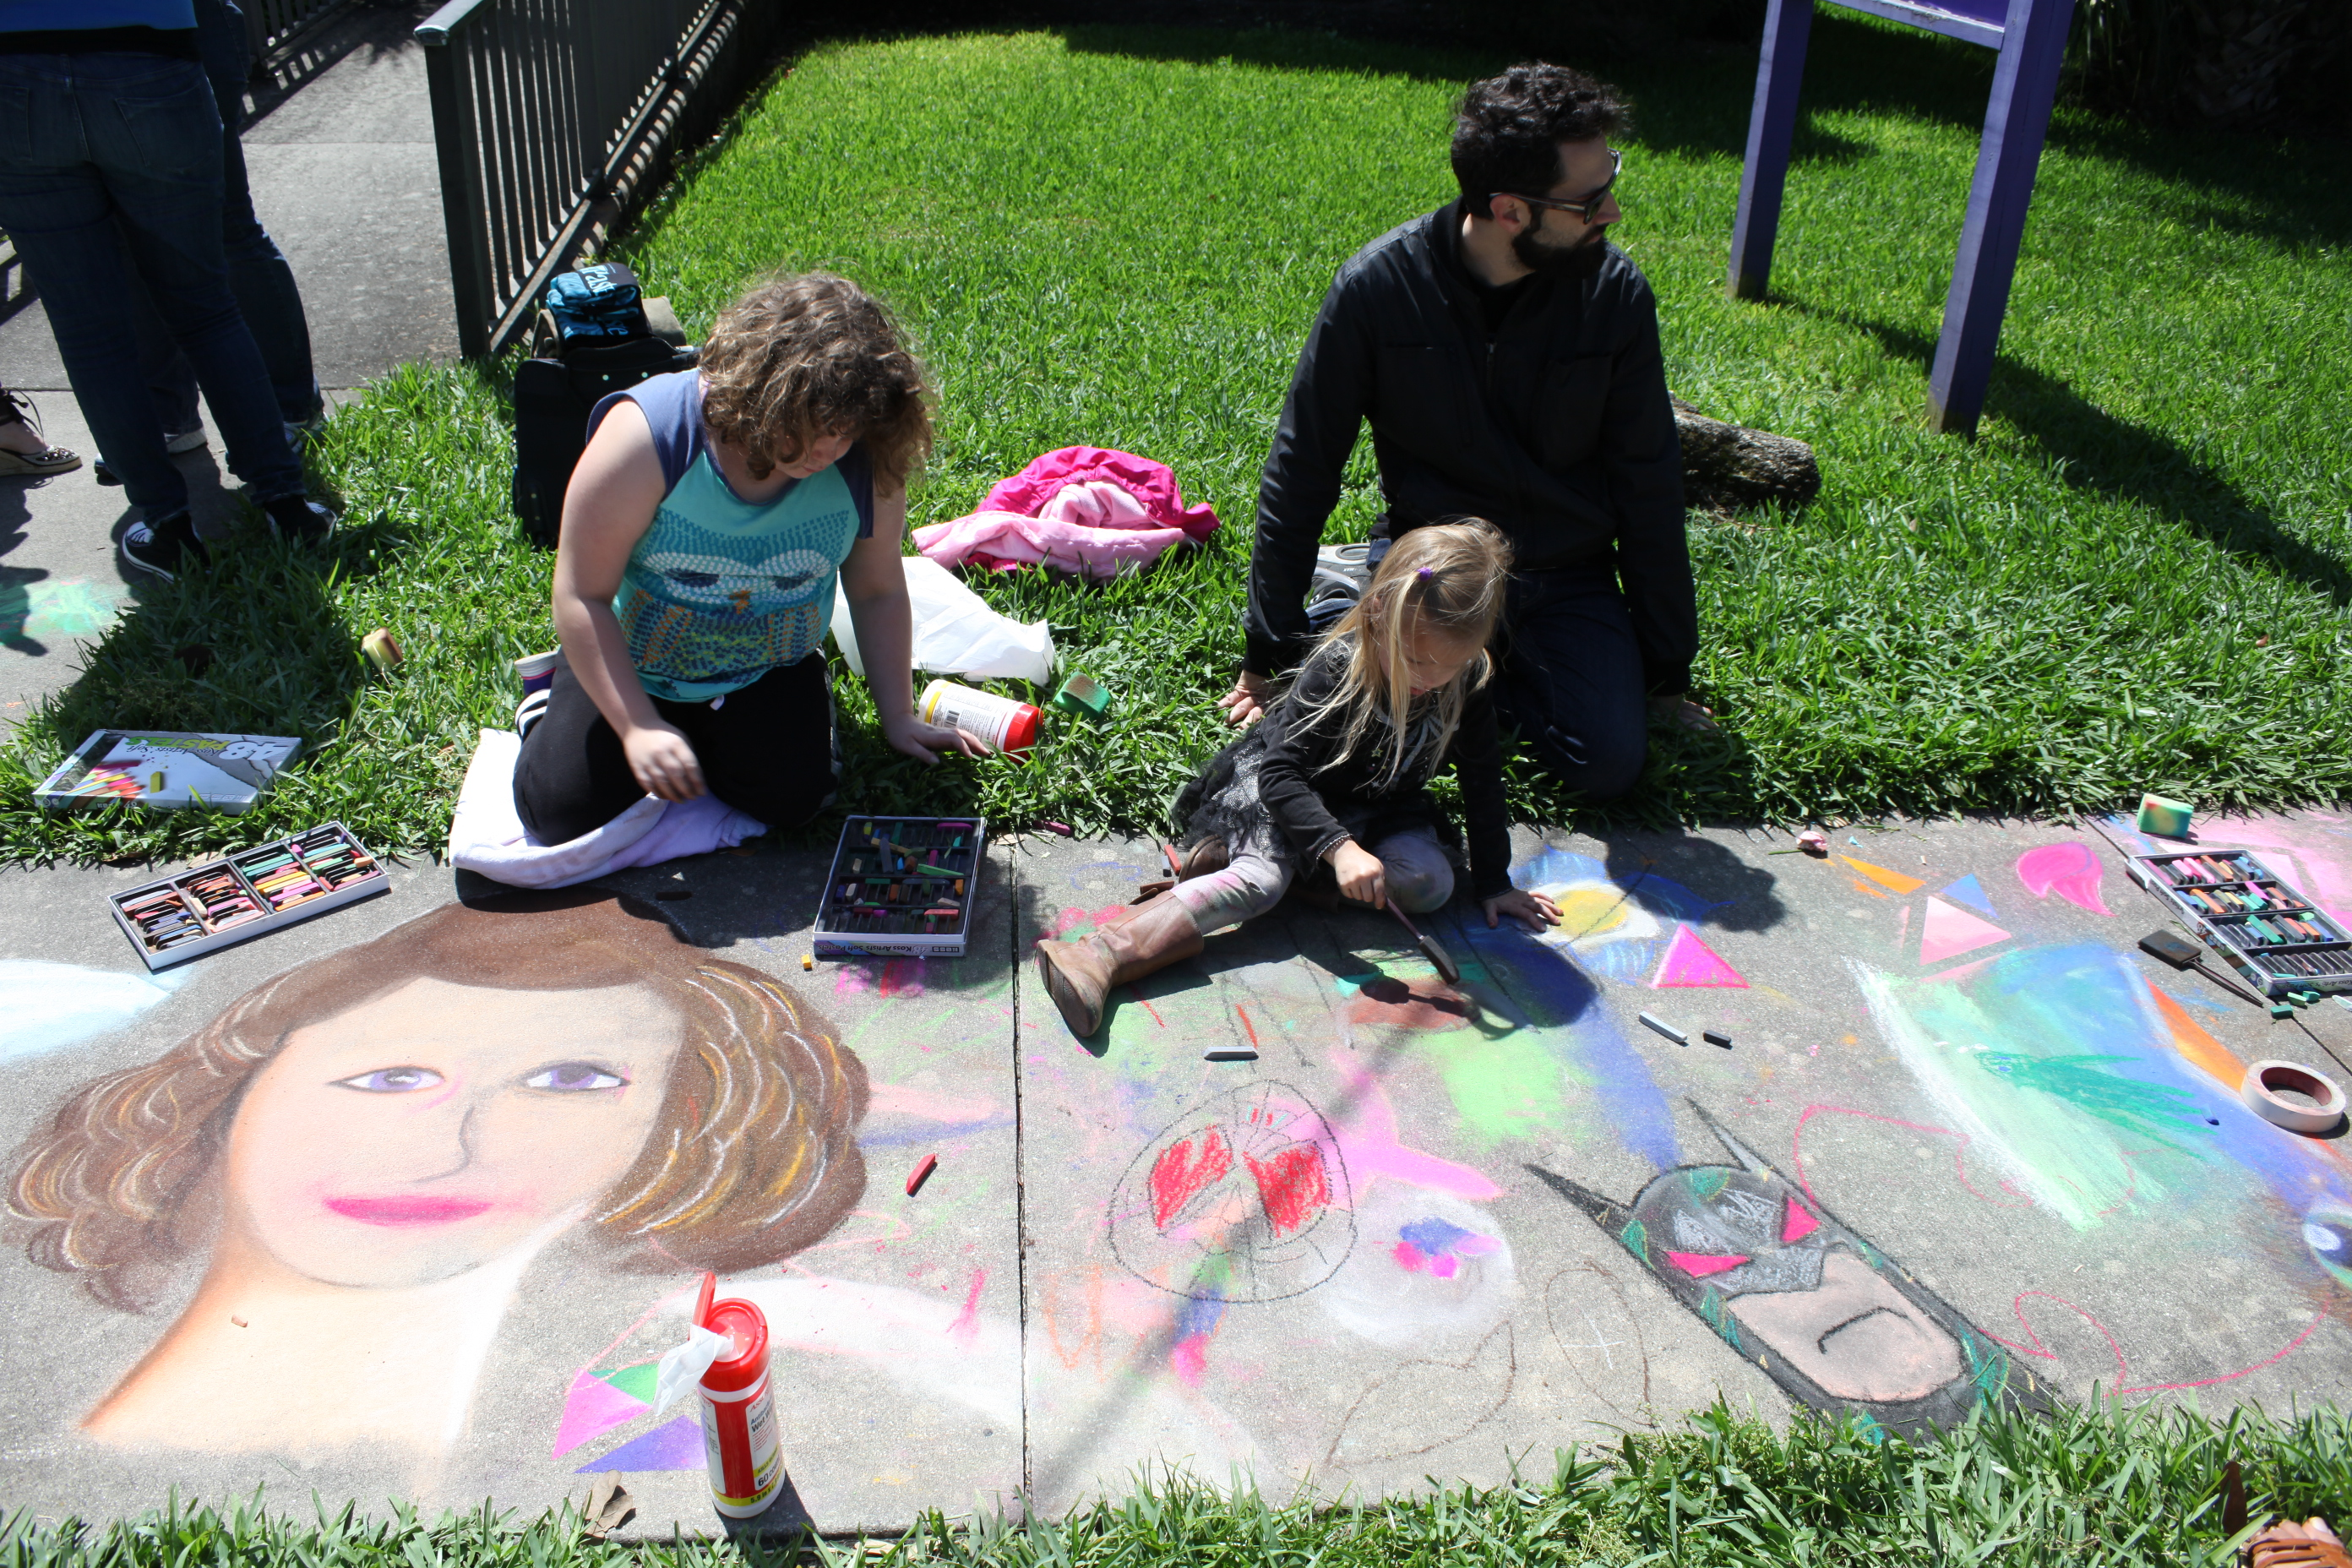 The 2015 Paseo Pastel St. Augustine Chalk Walk is set for May 1-3 in downtown St. Augustine. Photo shows an image from the chalking workshop on March 28. Photo by Renee Unsworth